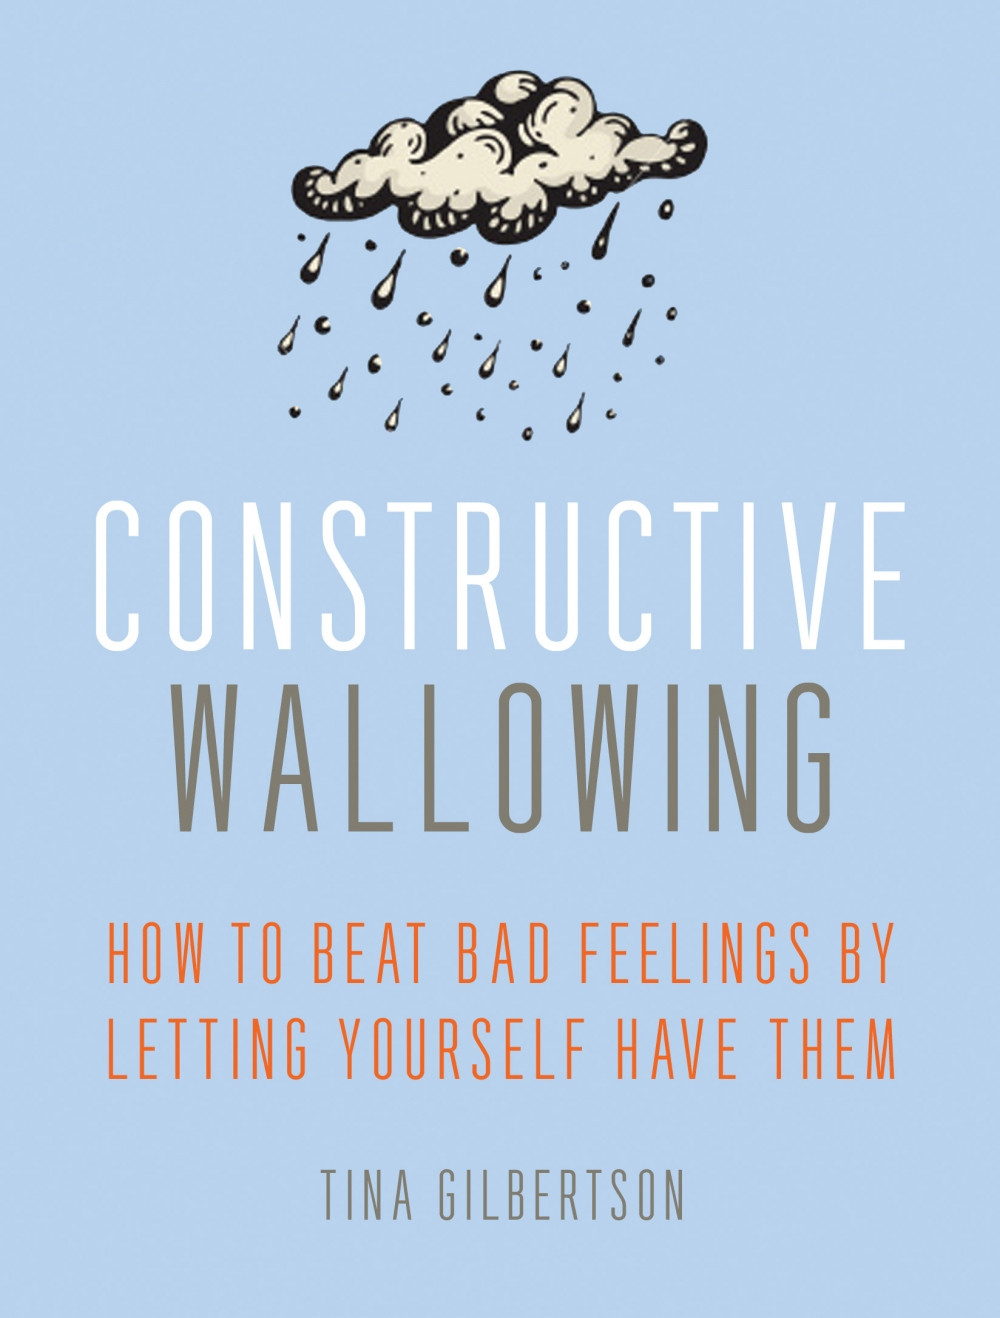 Book cover: Constructive Wallowing by Tina Gilbertson